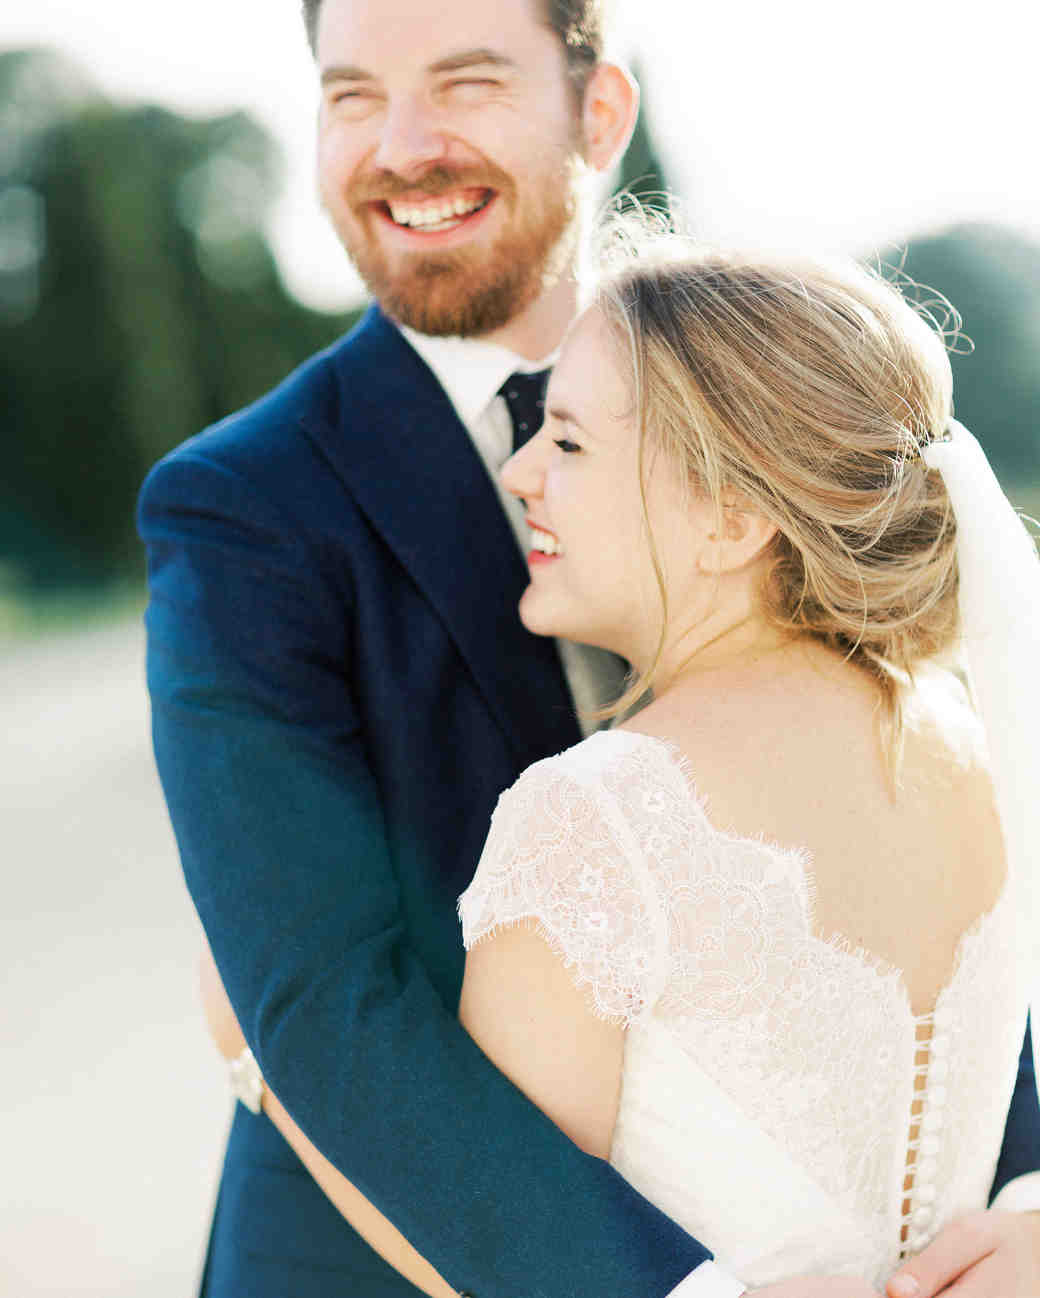 sophie christopher wedding couple embracing and smiling